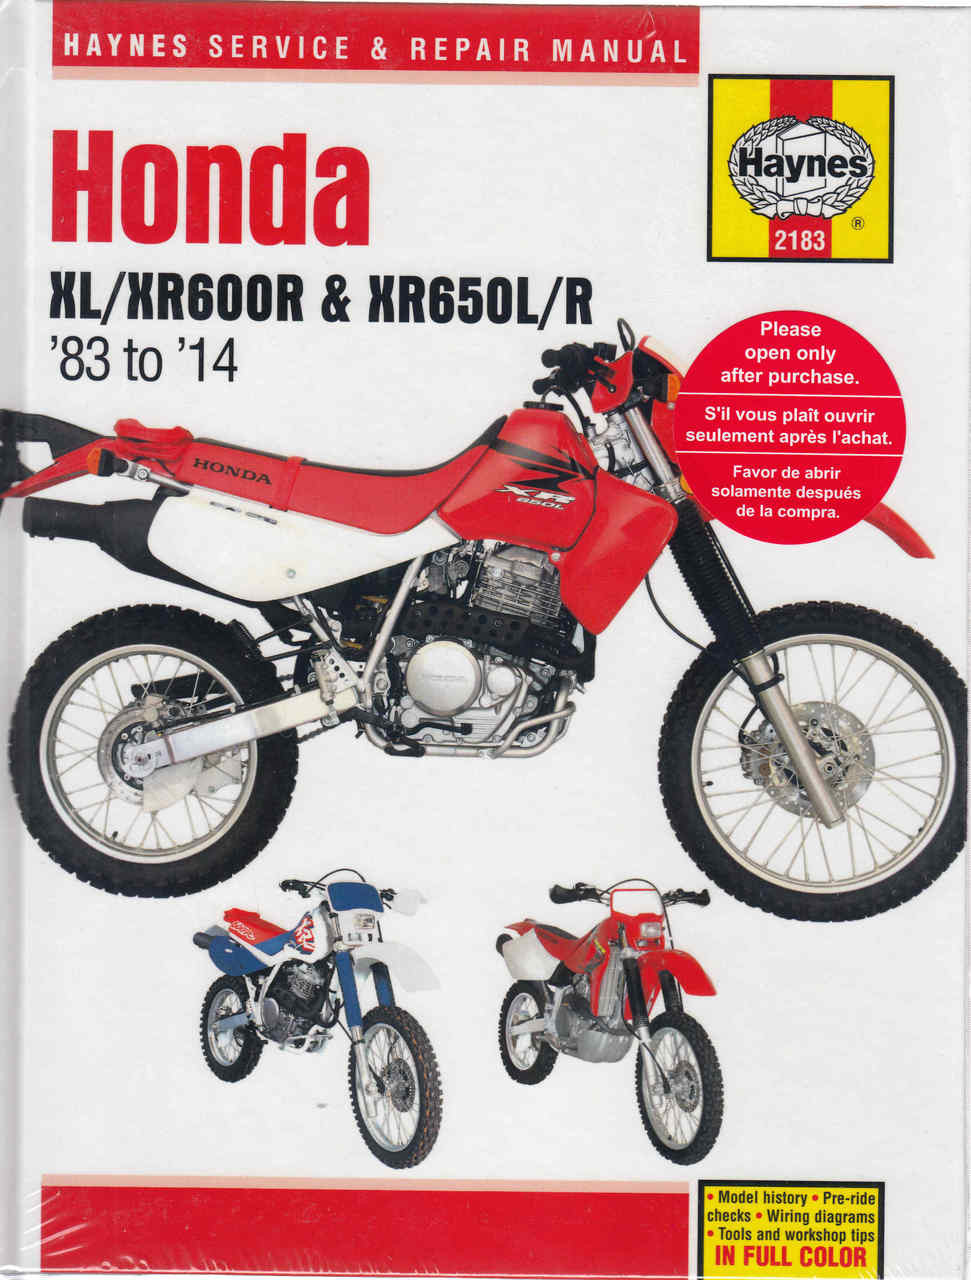 Honda XL600R, XR600R, XR650L, XR650R 1983 - 2014 Workshop Manual on